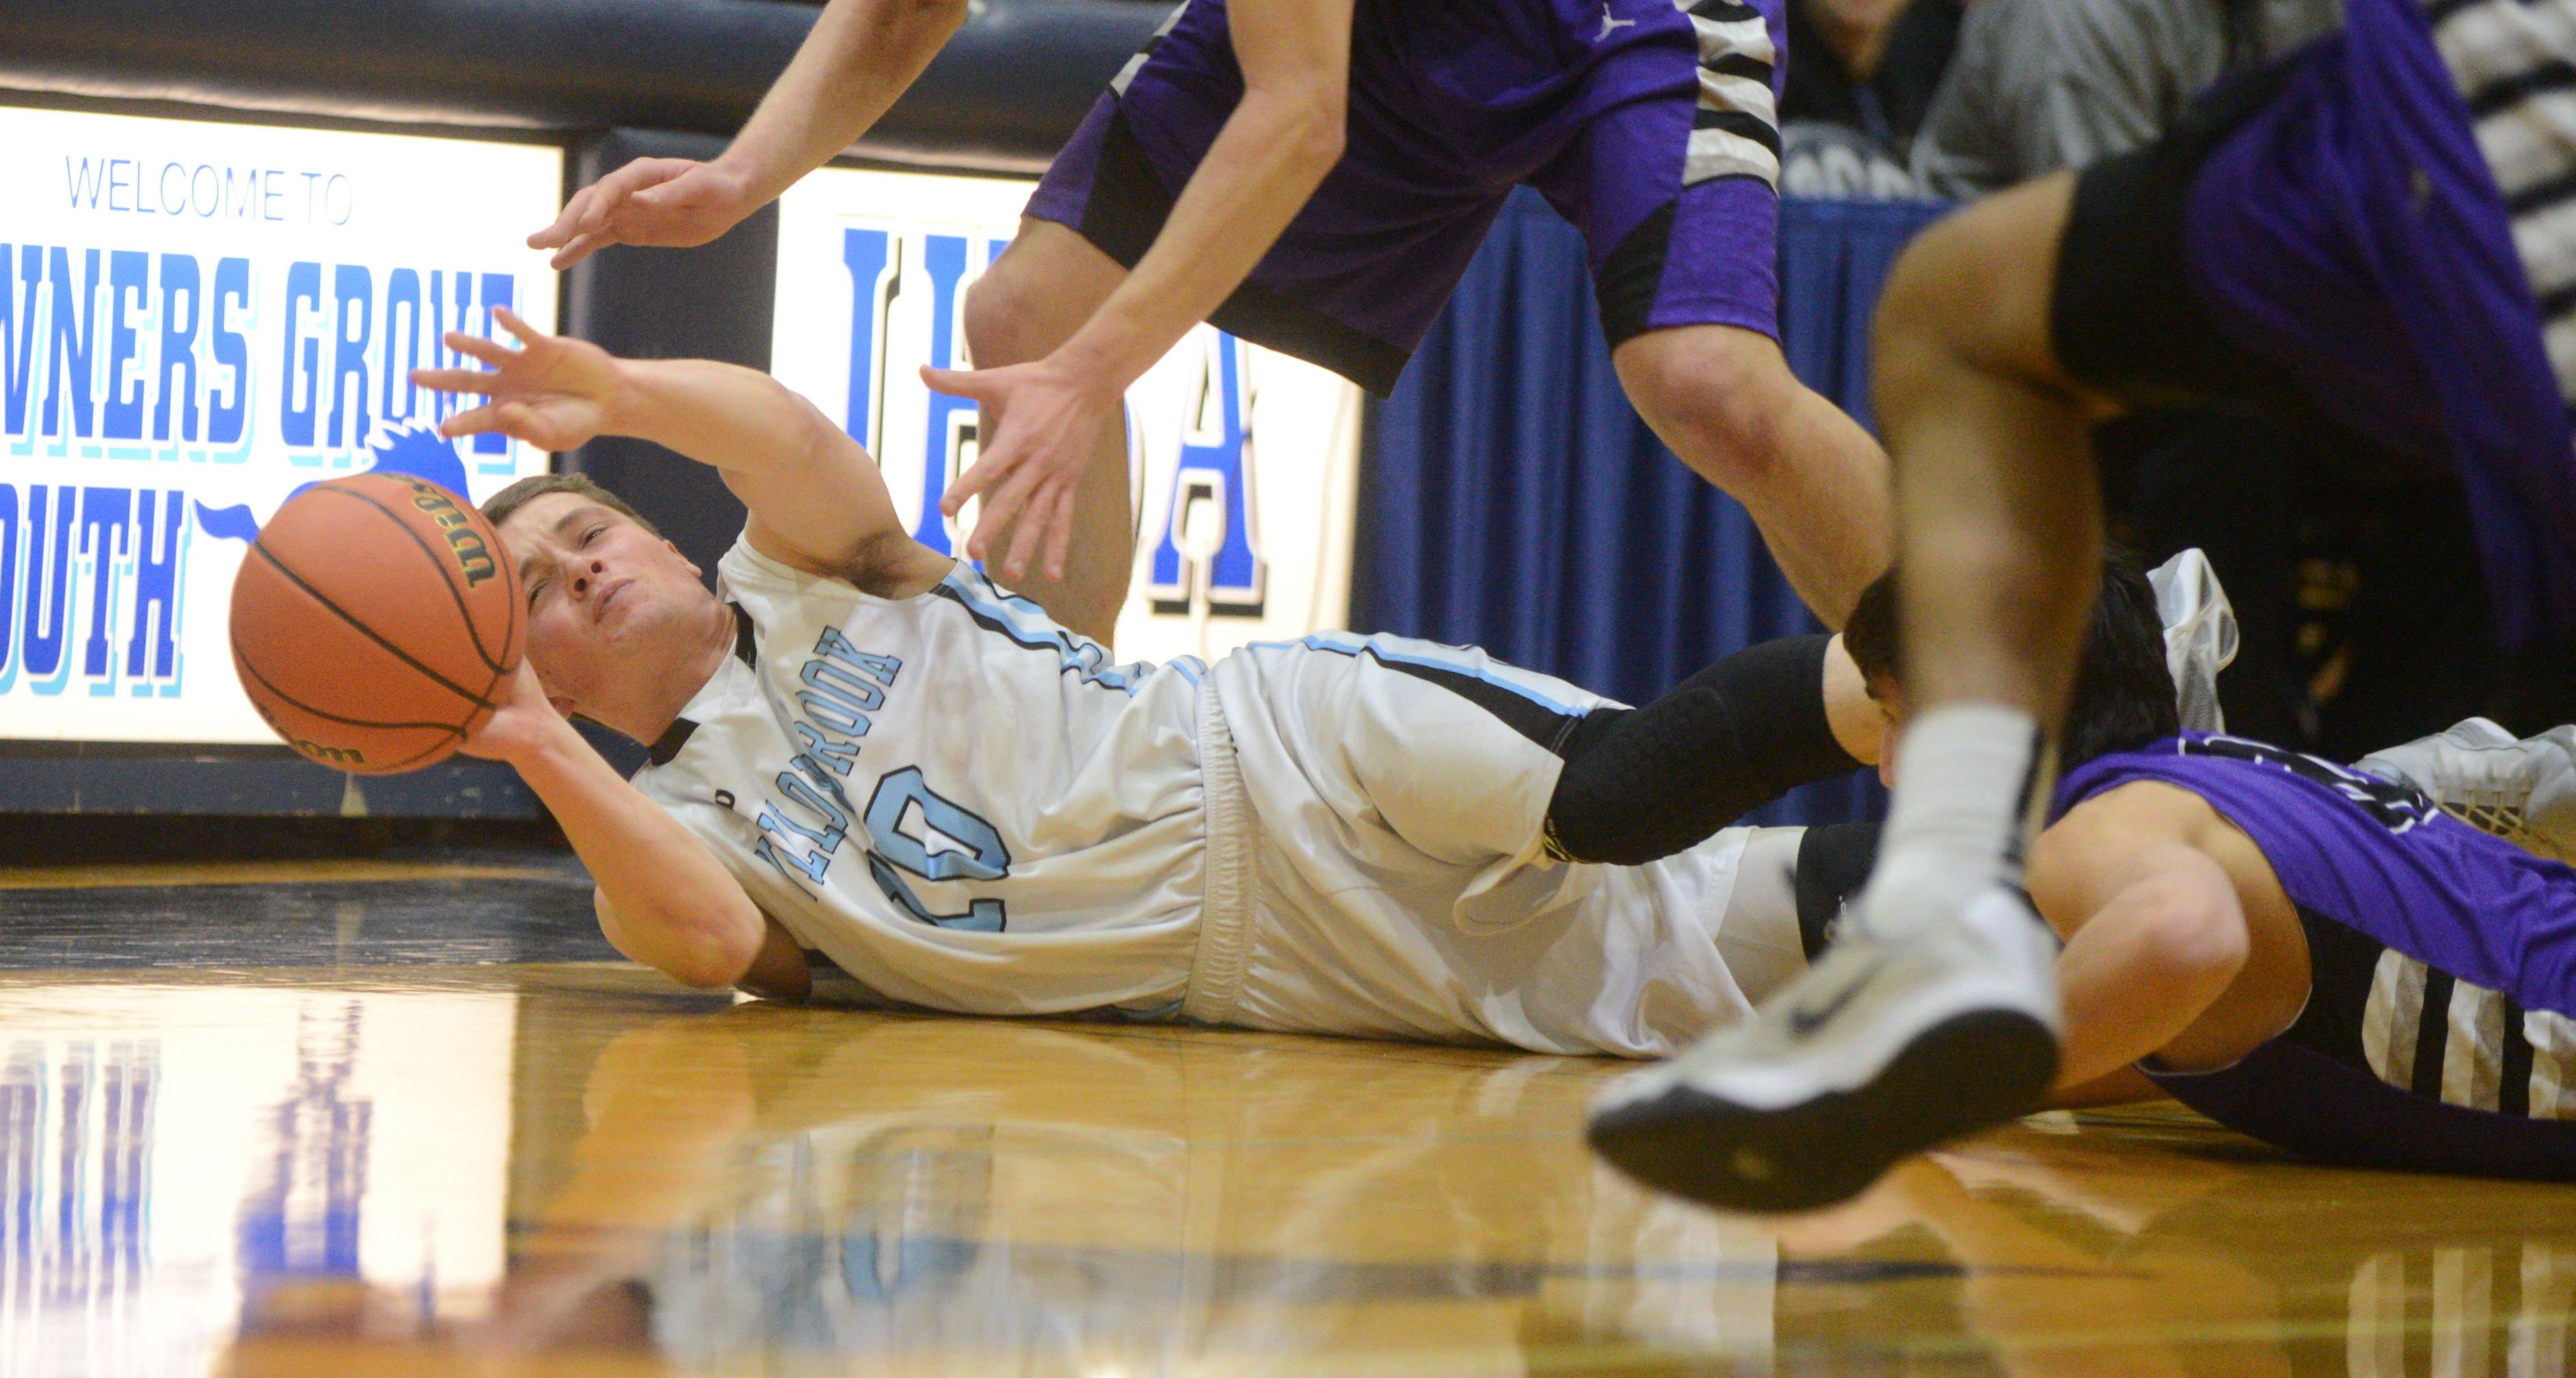 Downers Grove North ends Willowbrook's turnaround season